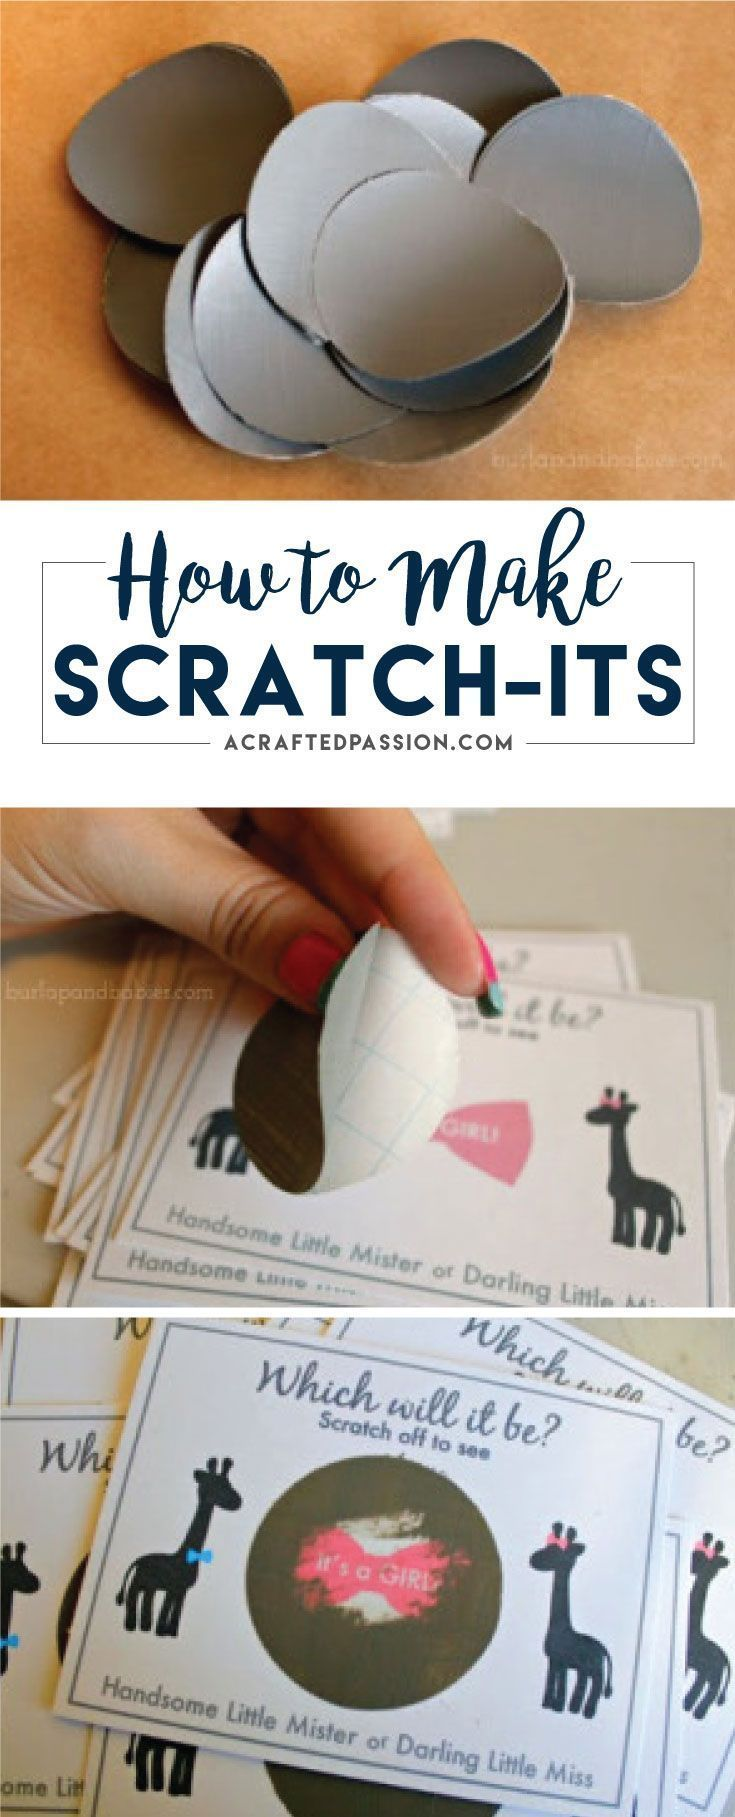 Looking for a creative way to announce the gender of your baby to family and friends? Make these easy gender reveal scratch-its. FREE printable included.